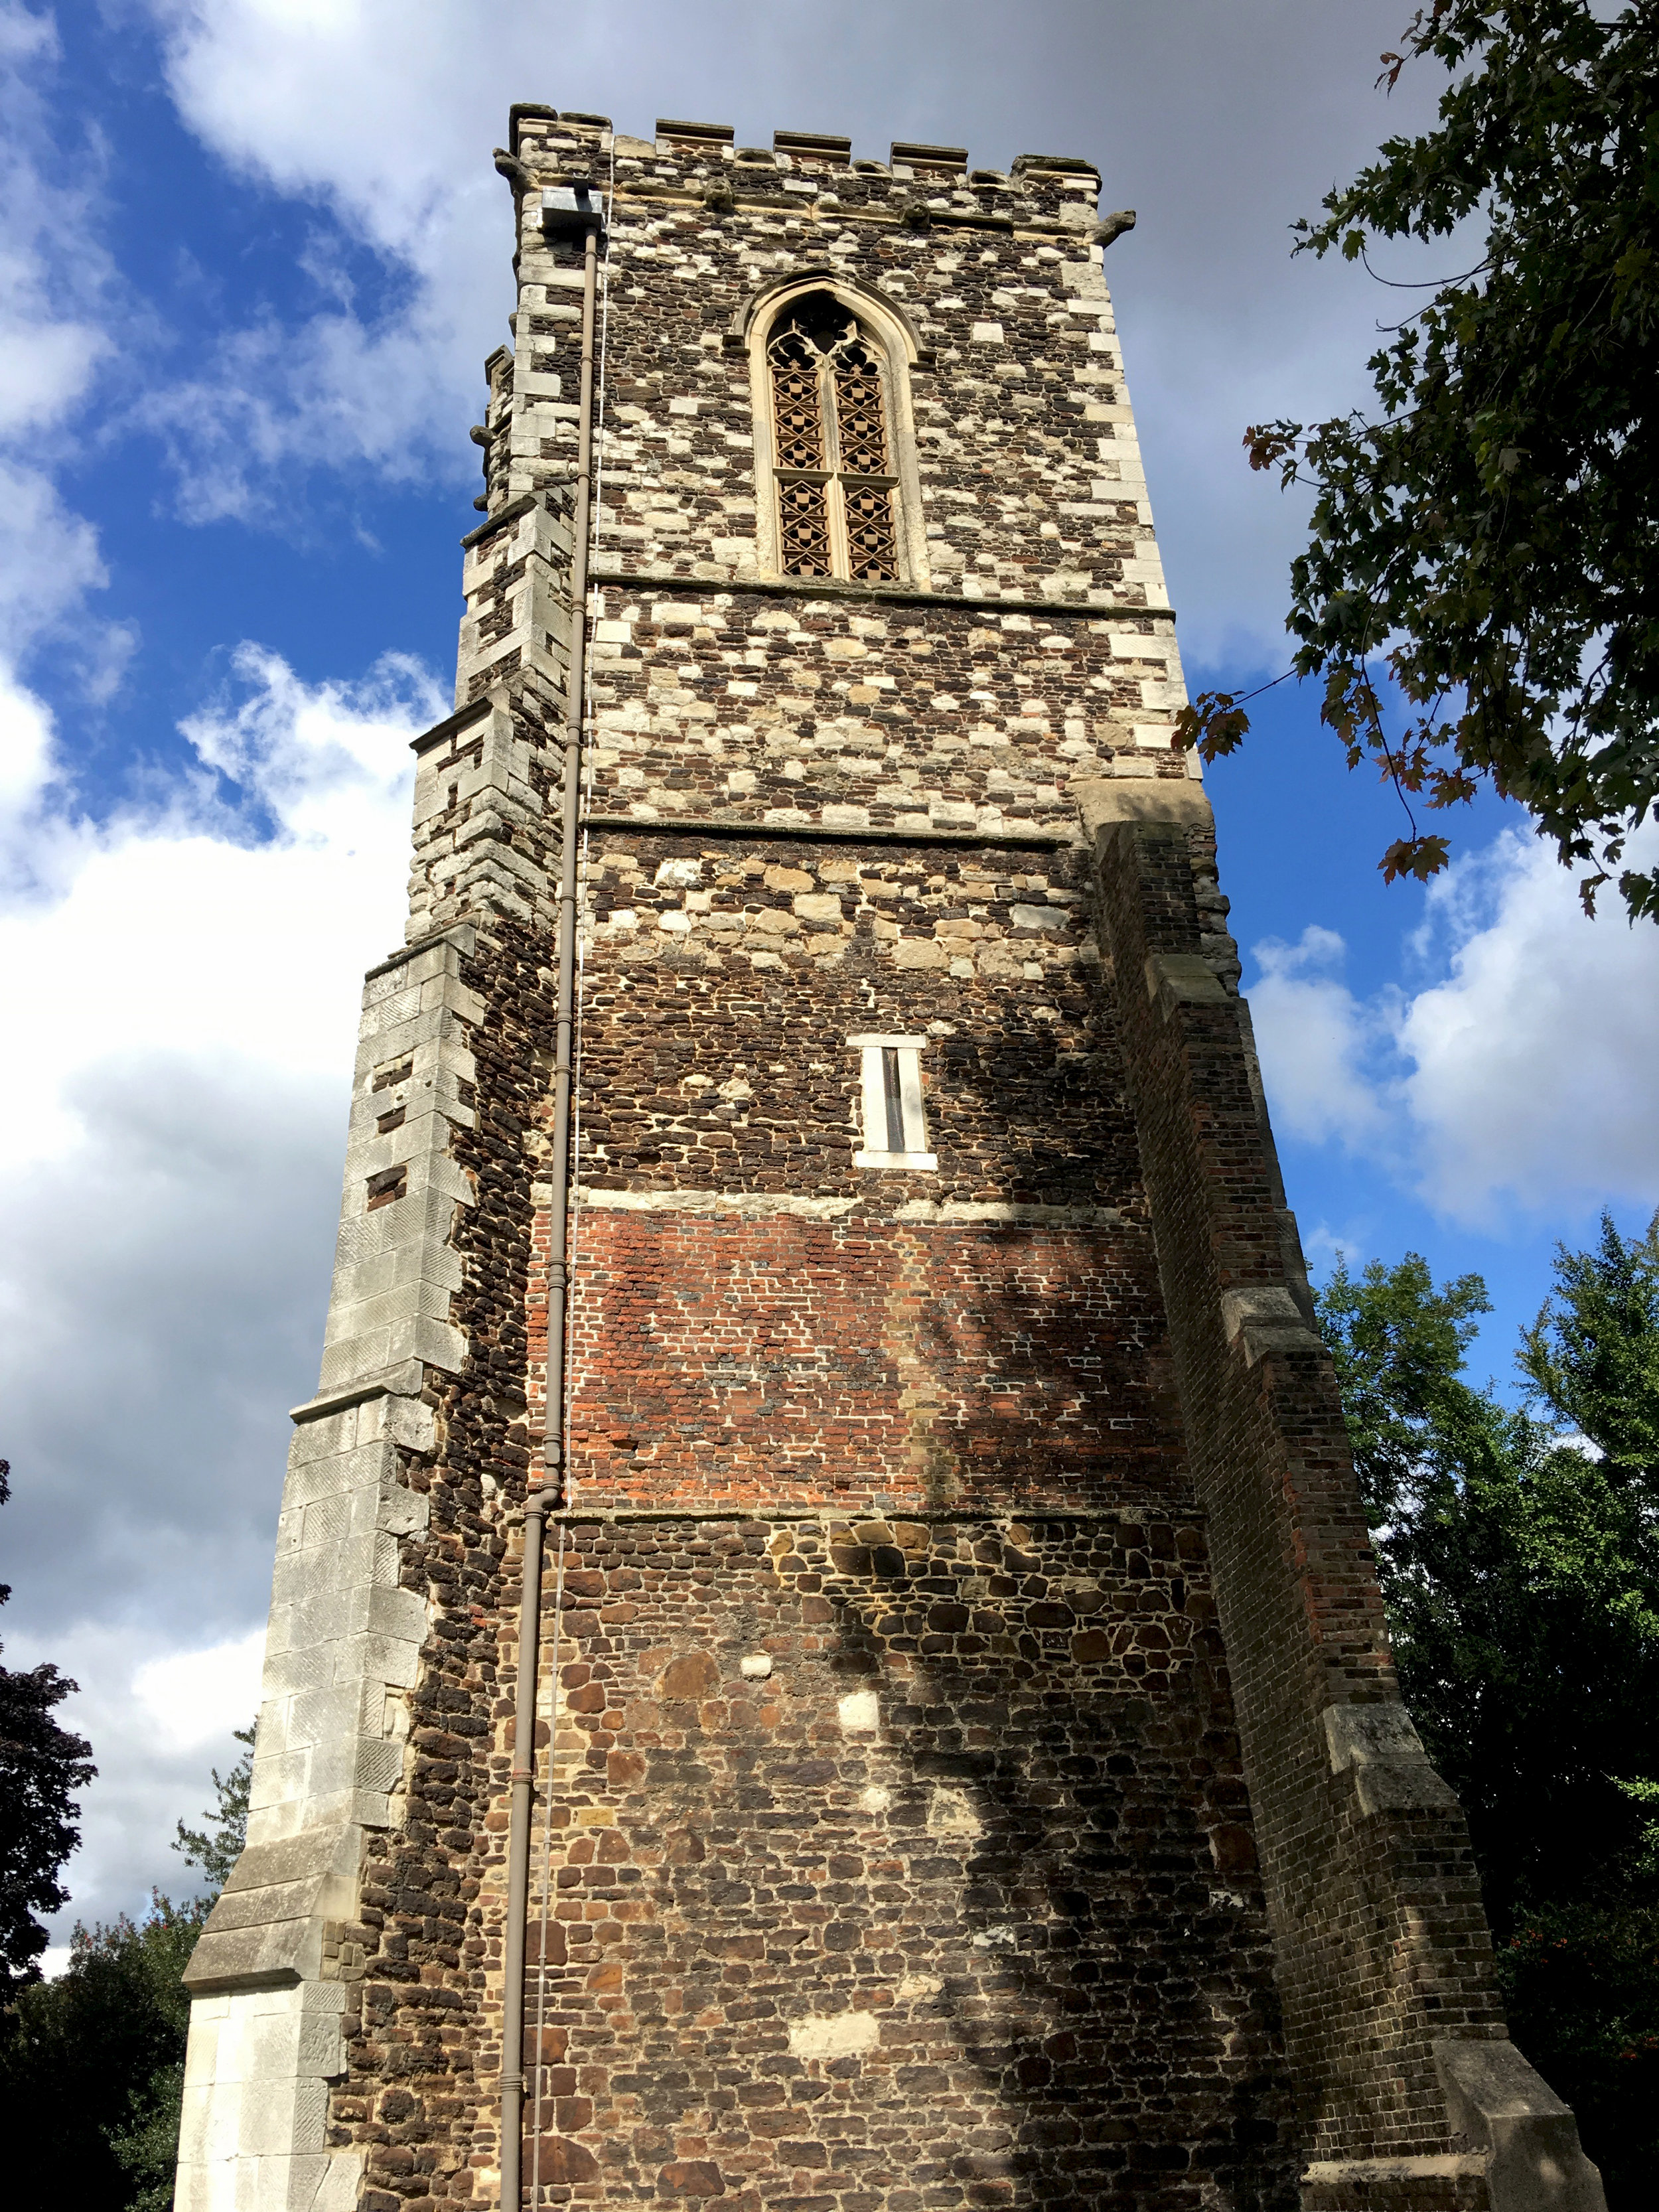 St Mary's Tower of Hornsey, the remnant of a medeival church with roots as far back as the 16th Century.